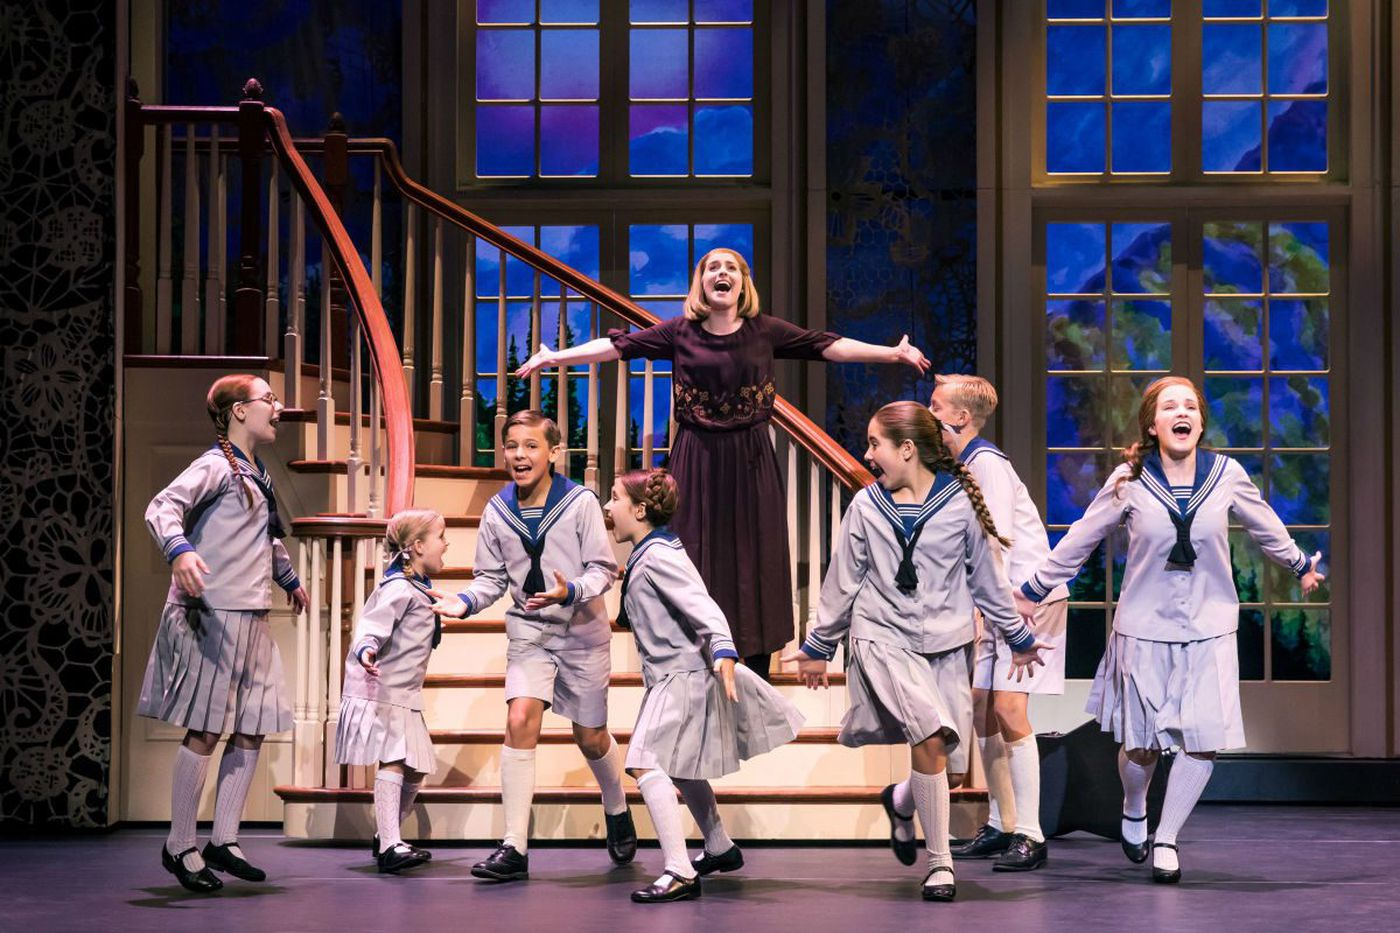 'Sound of Music' at the Merriam Theater: Tight, kinetic, great tunes, and Gretl and Brigitta